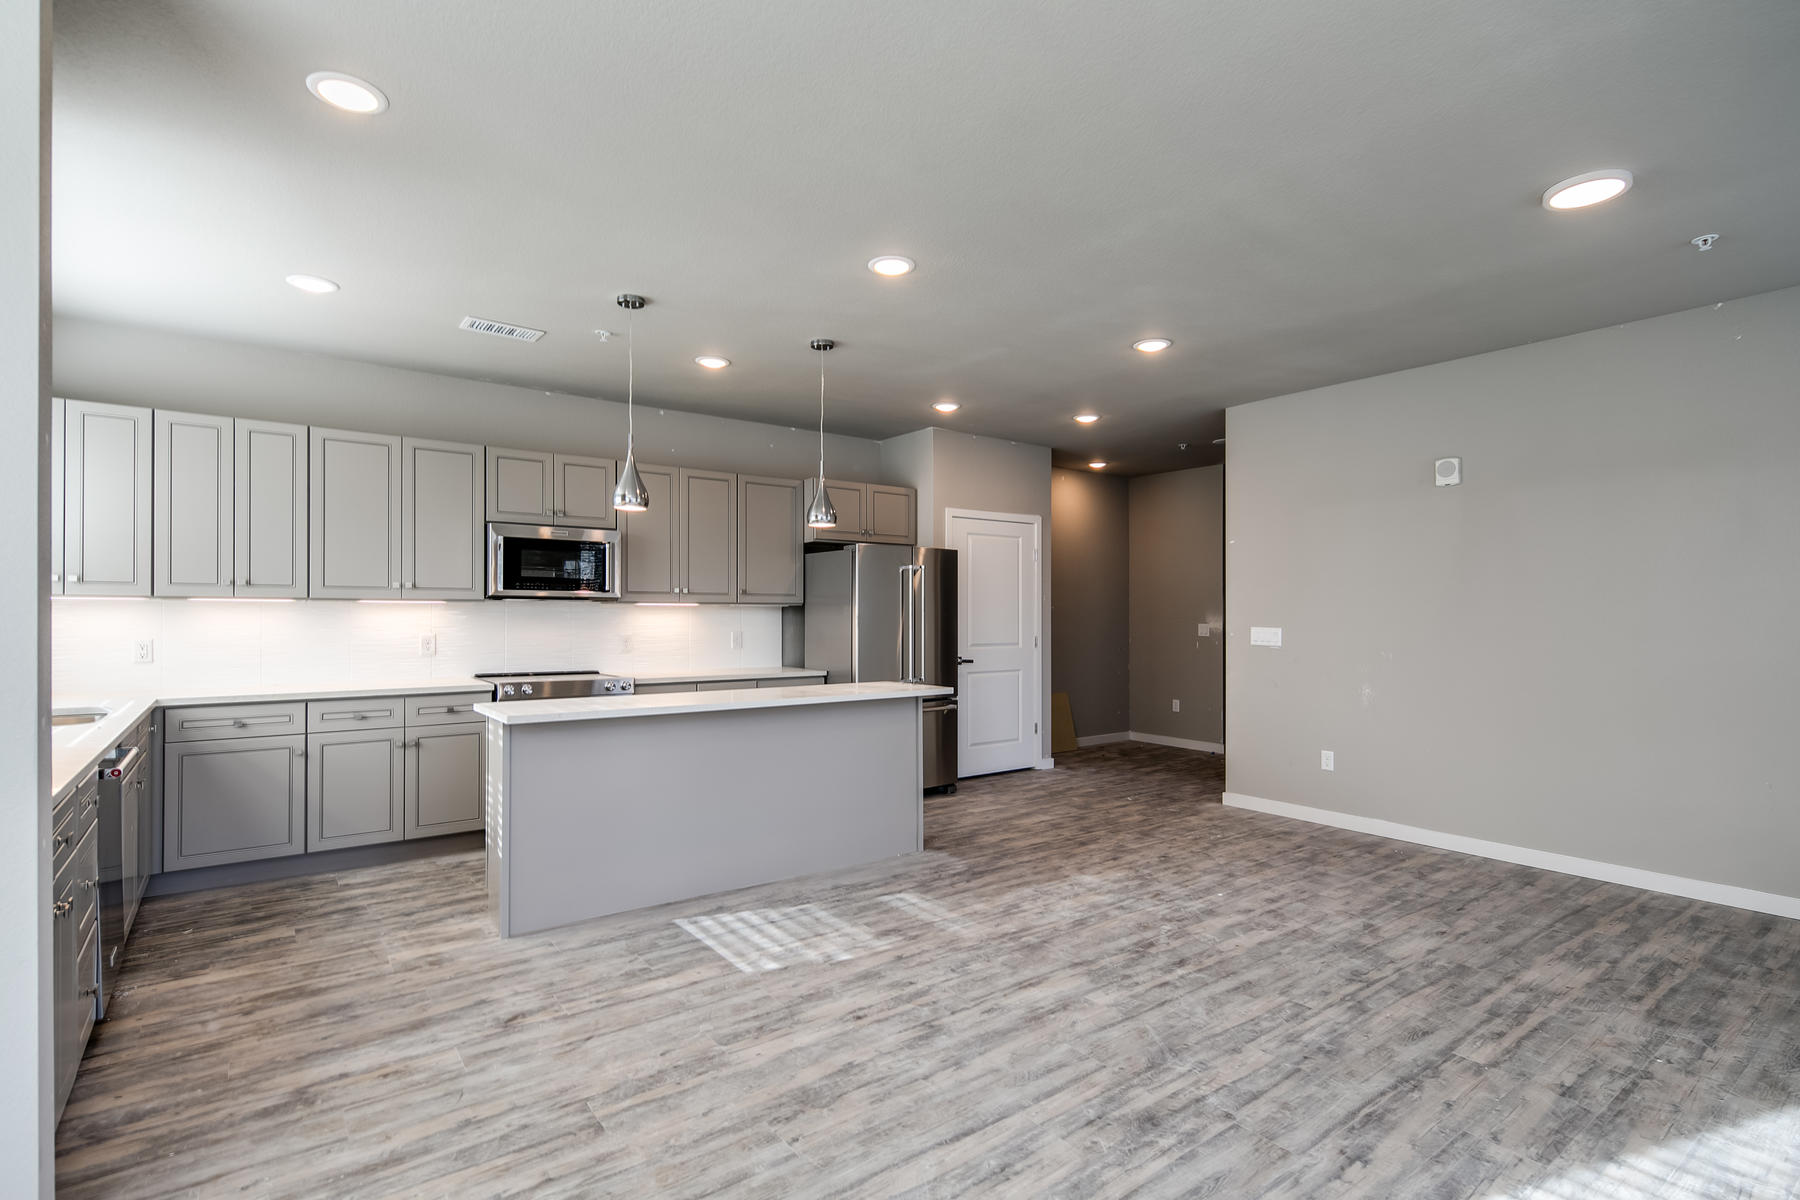 Additional photo for property listing at 155 South Monaco Parkway #314 155 S Monaco Pkwy #314 Denver, Colorado 80224 United States